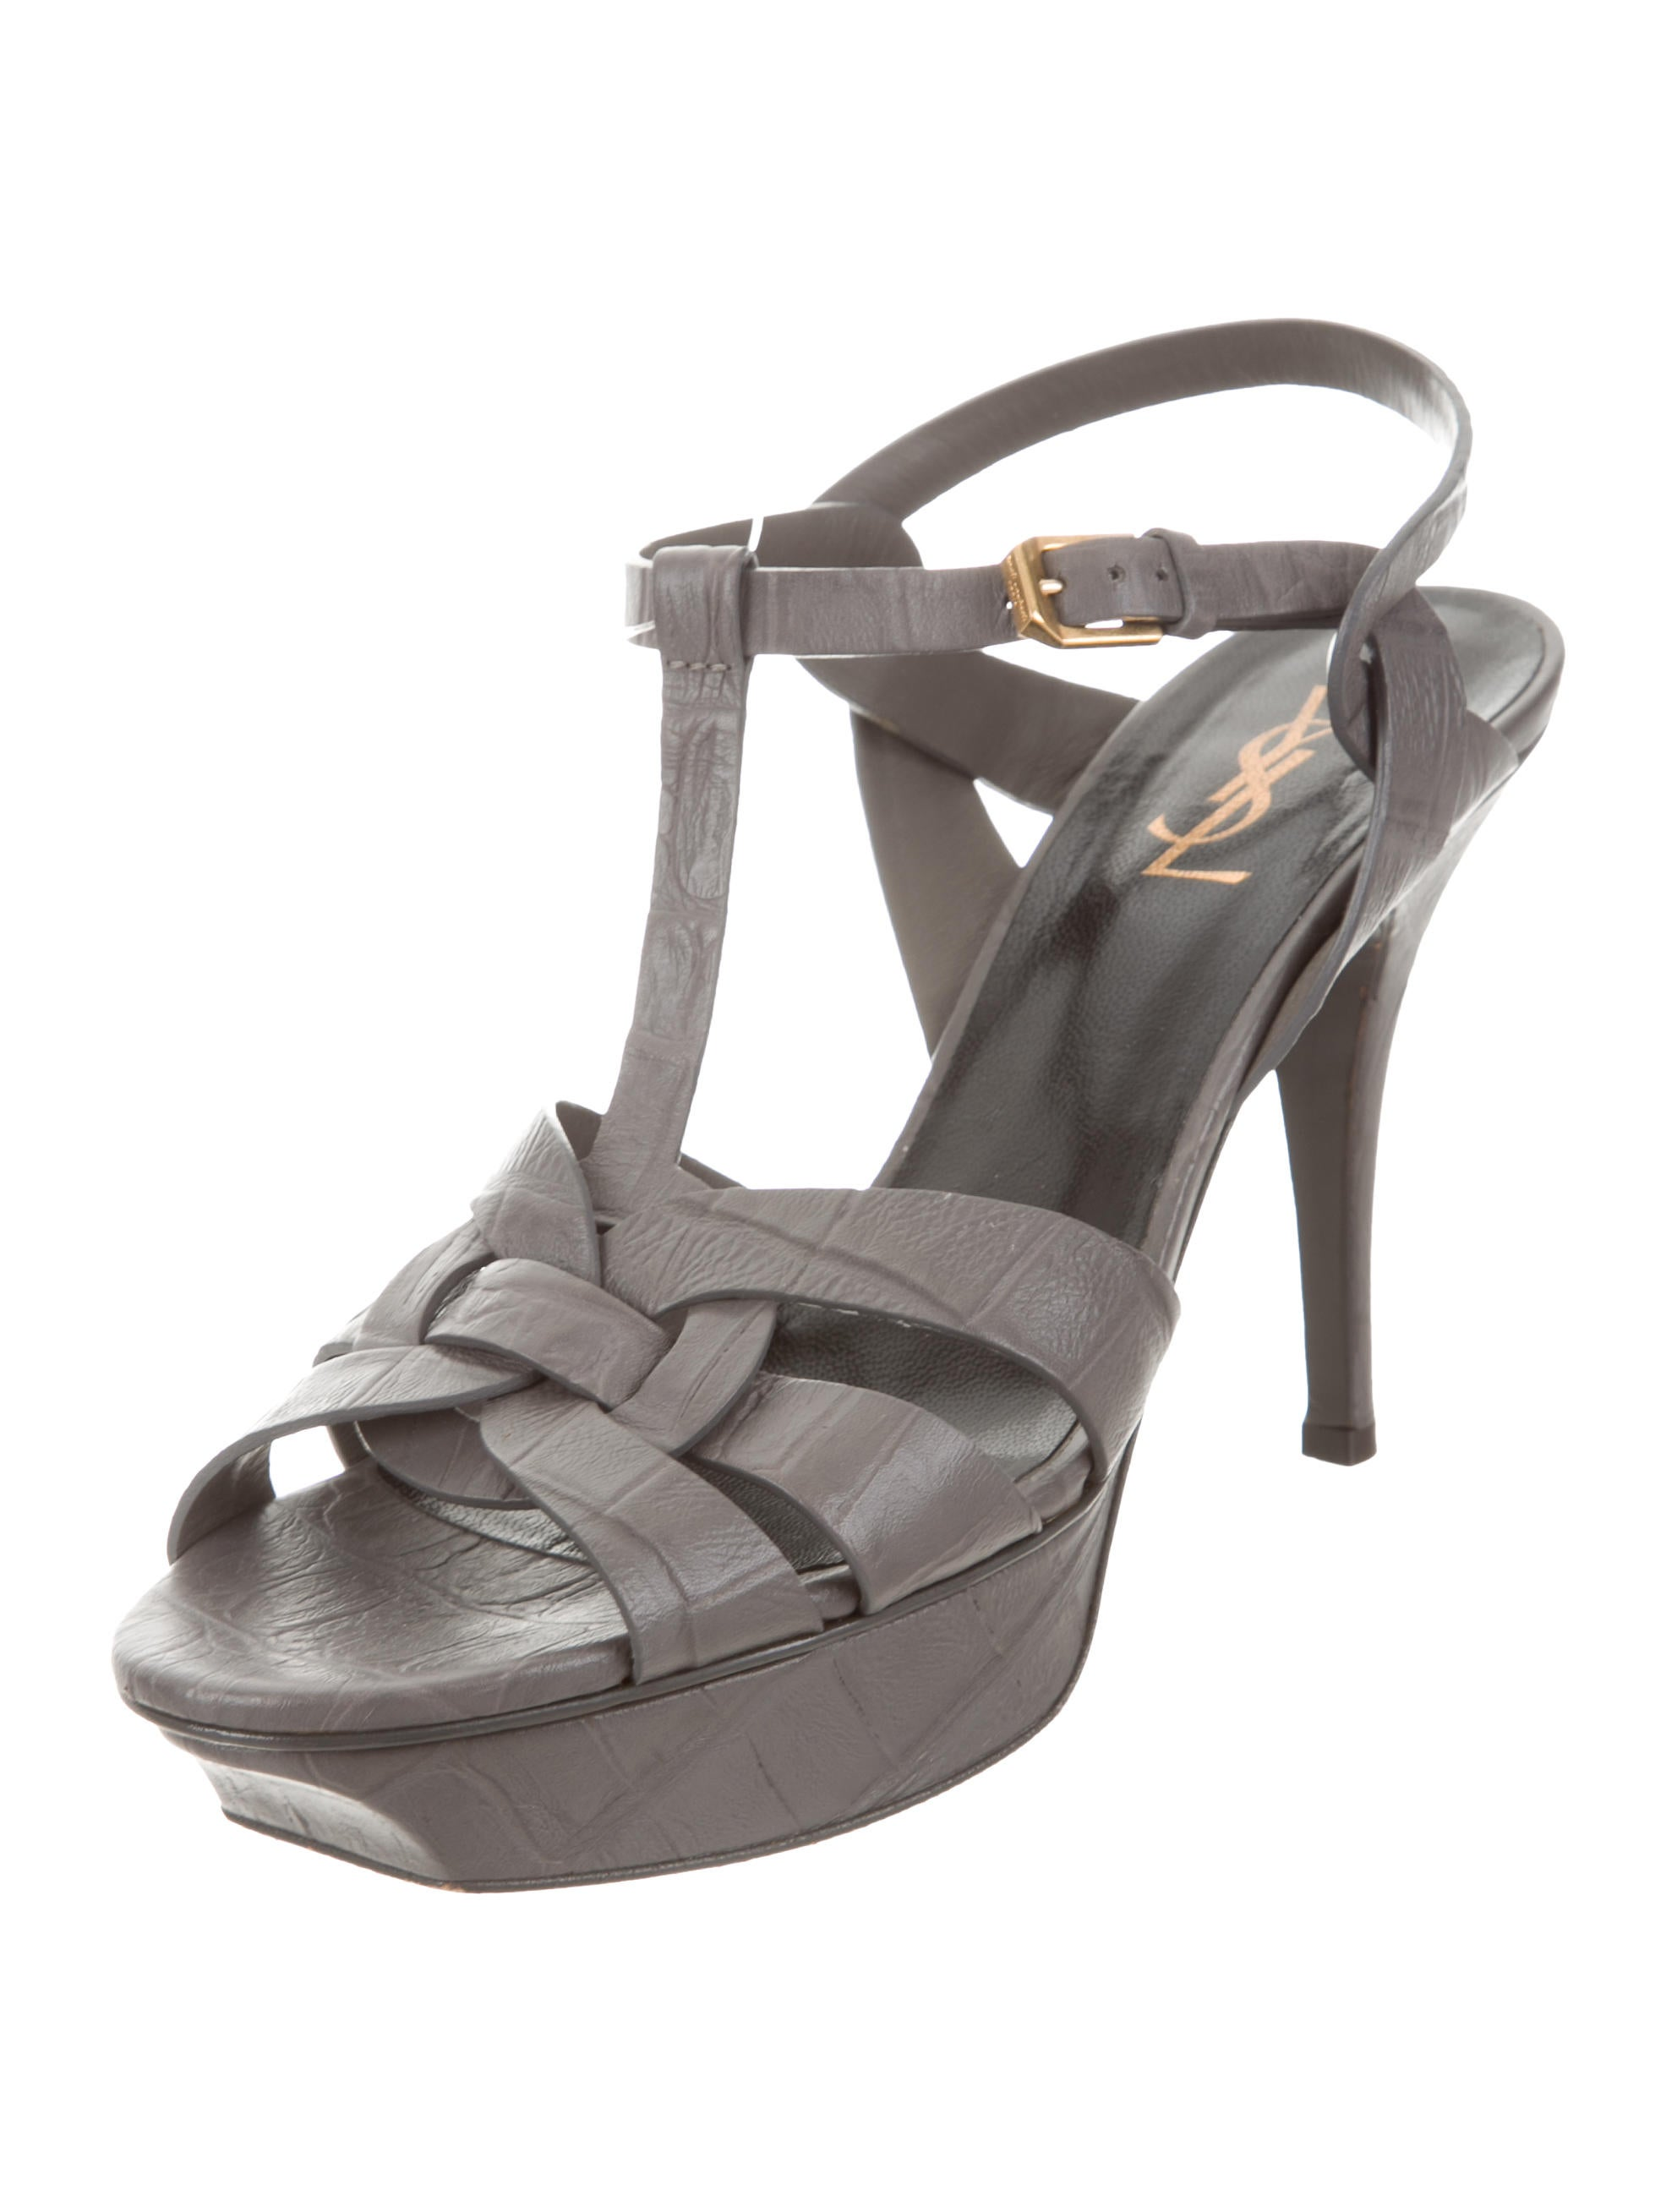 cheap factory outlet outlet Yves Saint Laurent Embossed Tribute Sandals cheap deals free shipping Inexpensive for sale sale online 9yxIdIDS